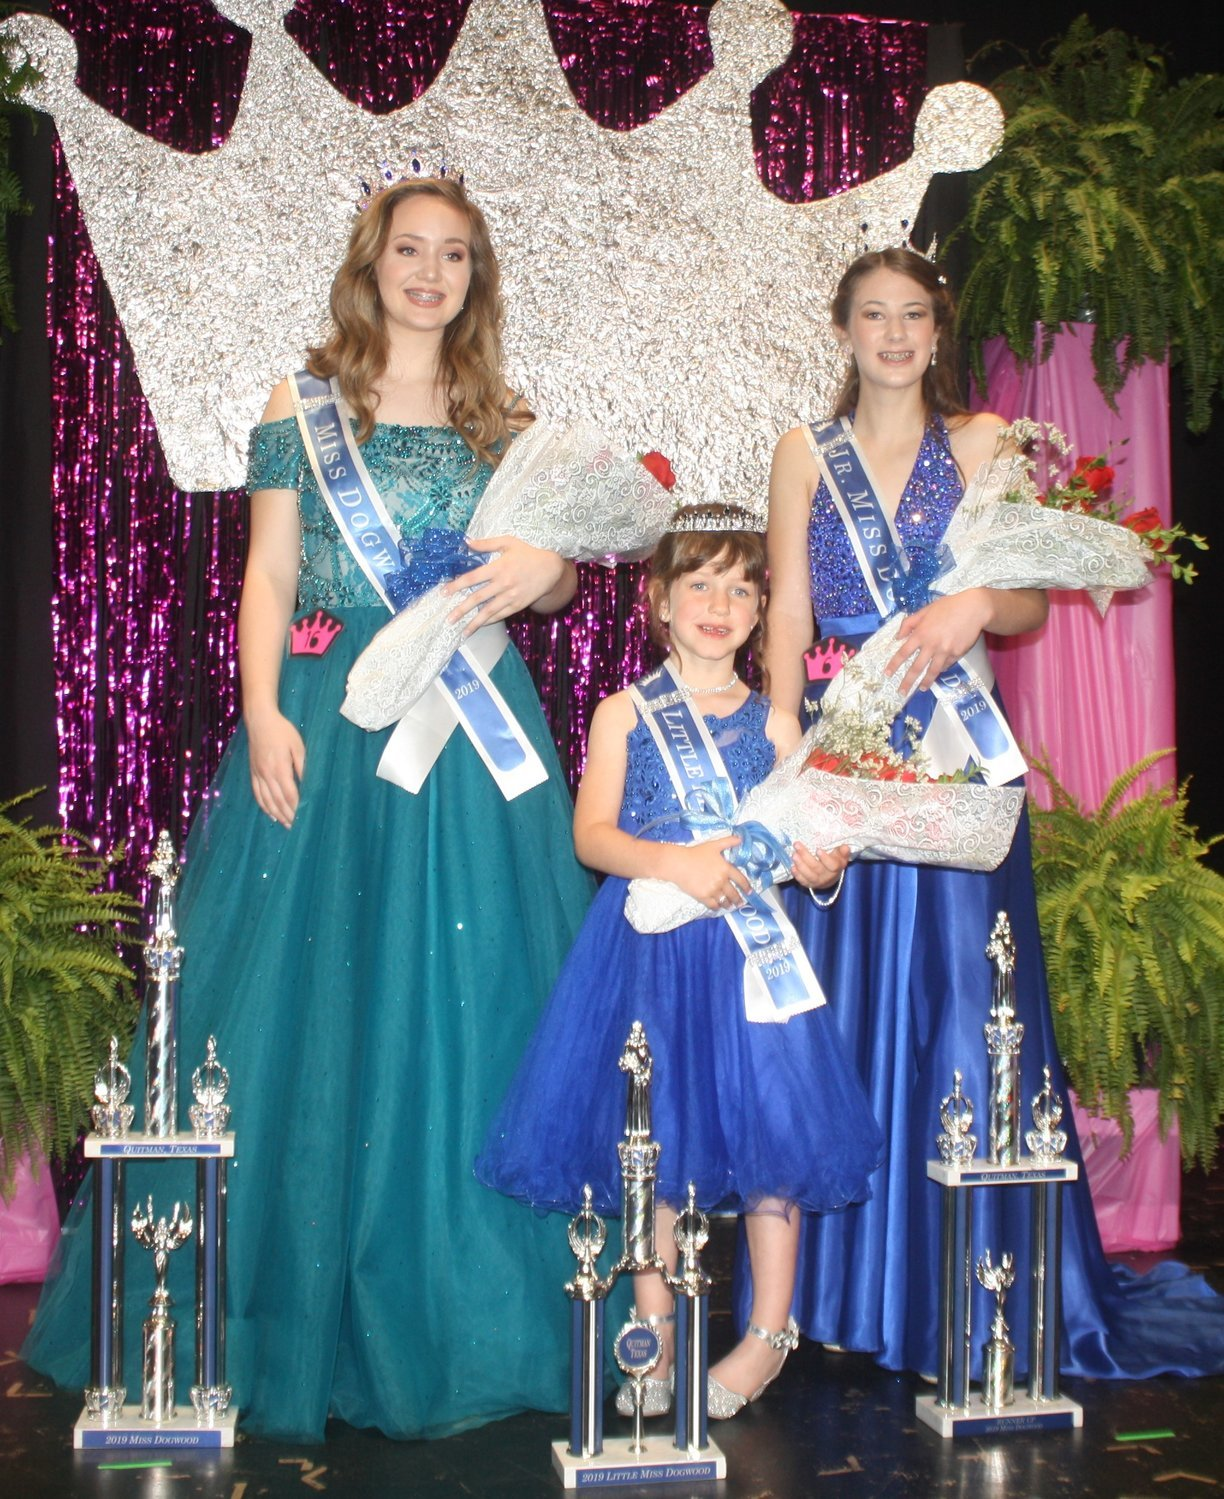 The 2019 Dogwood Queens together on stage with their flowers and trophies. Miss Dogwood Lucy Brannon (left) Little Miss Dogwood Karley Kernes (middle) and Junior Miss Dogwood Kameran Farnham.